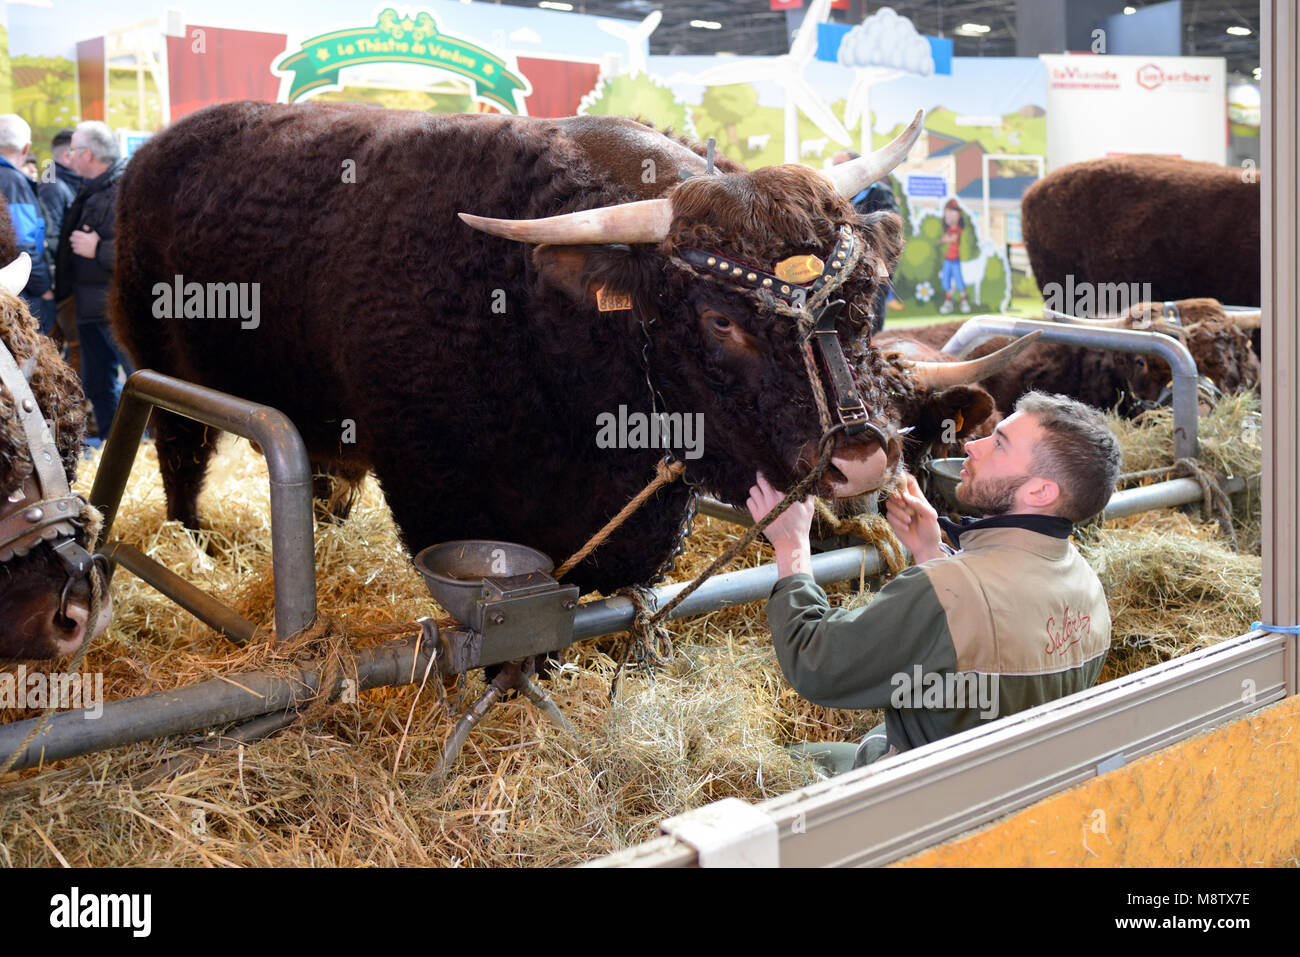 Dual-Purpose Salers Cattle, Cow or Bull & Breeder or Farmer in Cattle Pen at the Paris International Agricultural - Stock Image